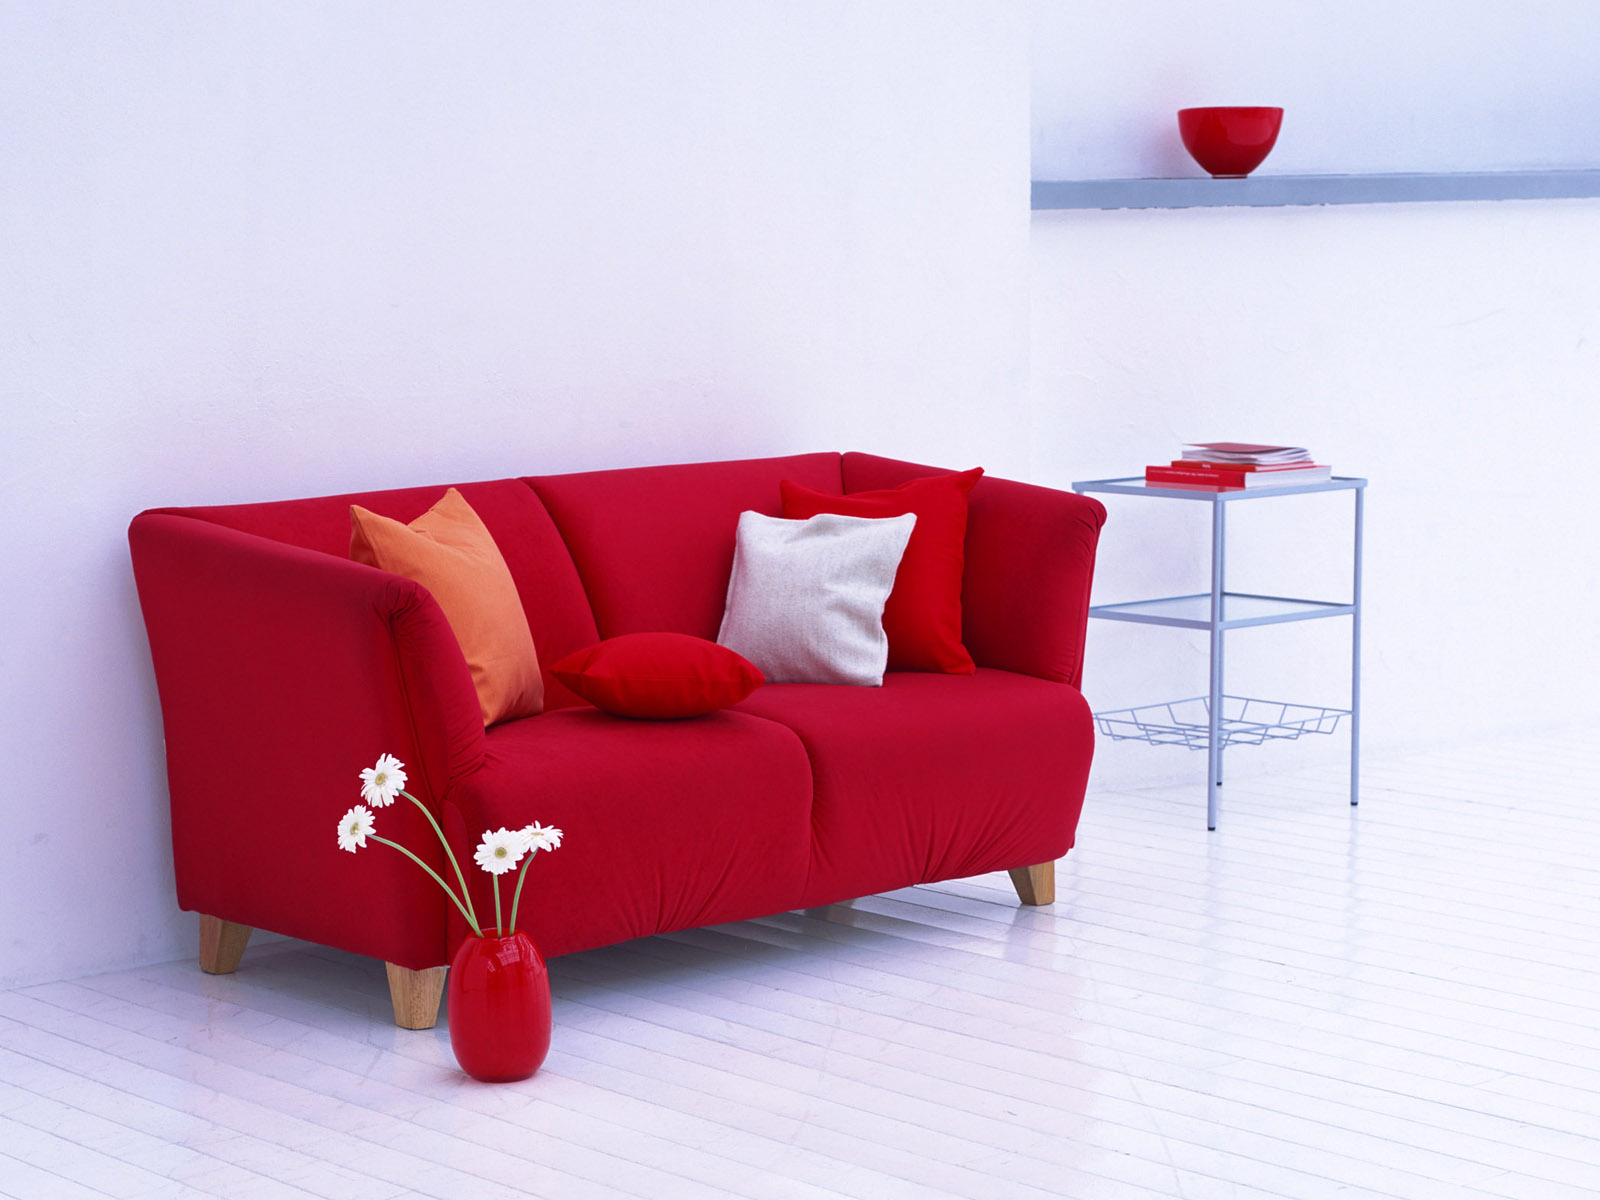 Cool Motivational Wallpapers For Girls Red Sofa Wallpapers Red Sofa Stock Photos